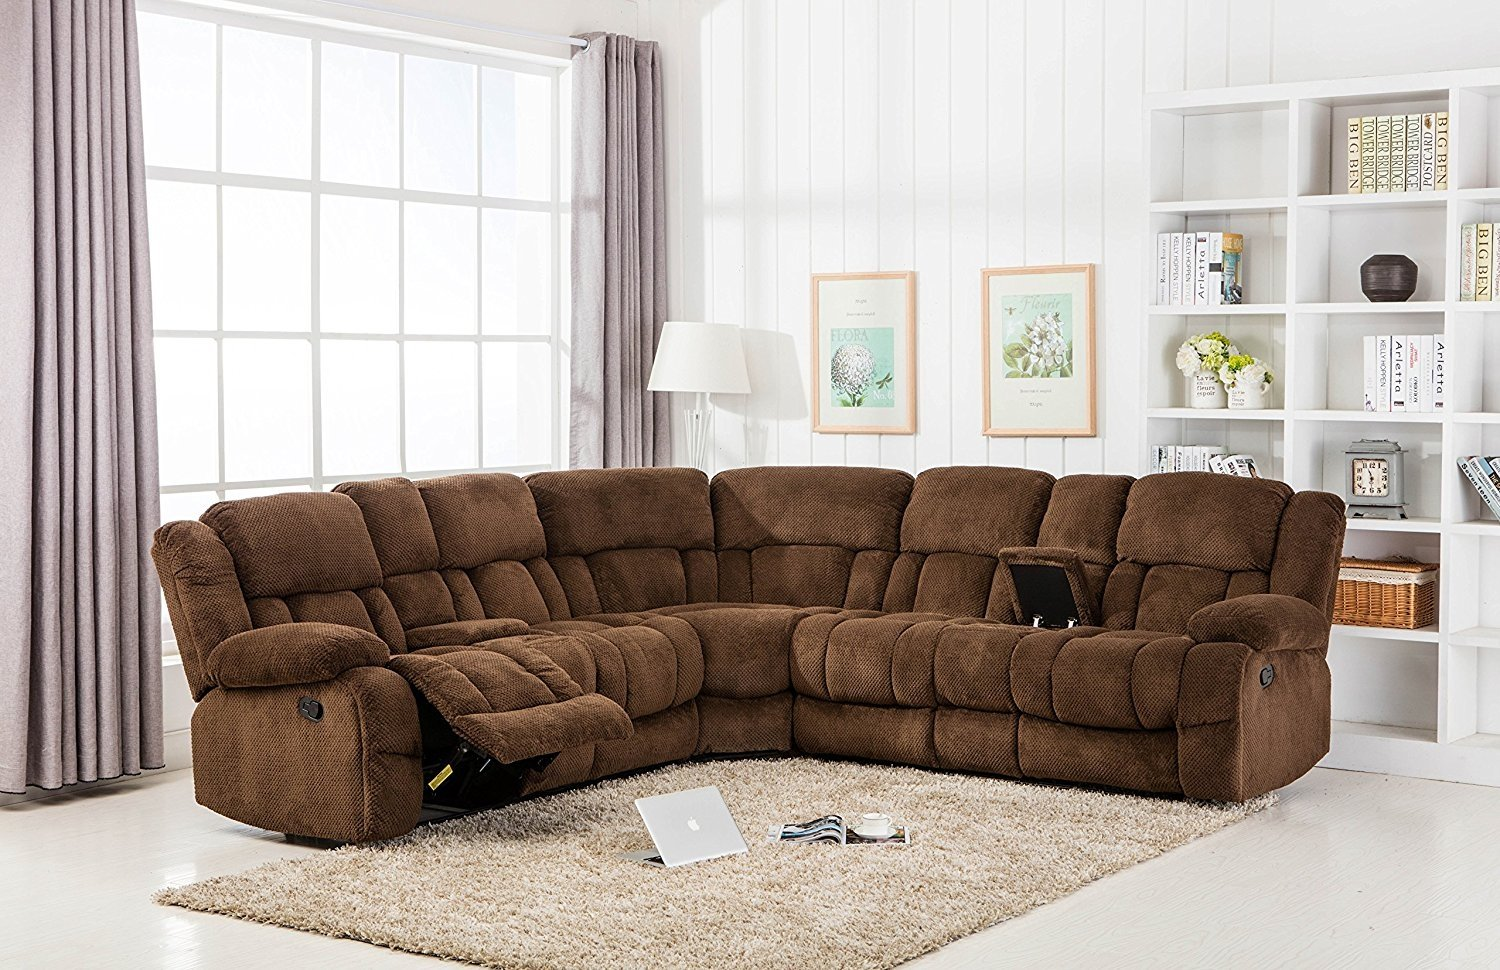 Classic Large Linen Fabric L Shape Sectional Recliner Sofa Couch